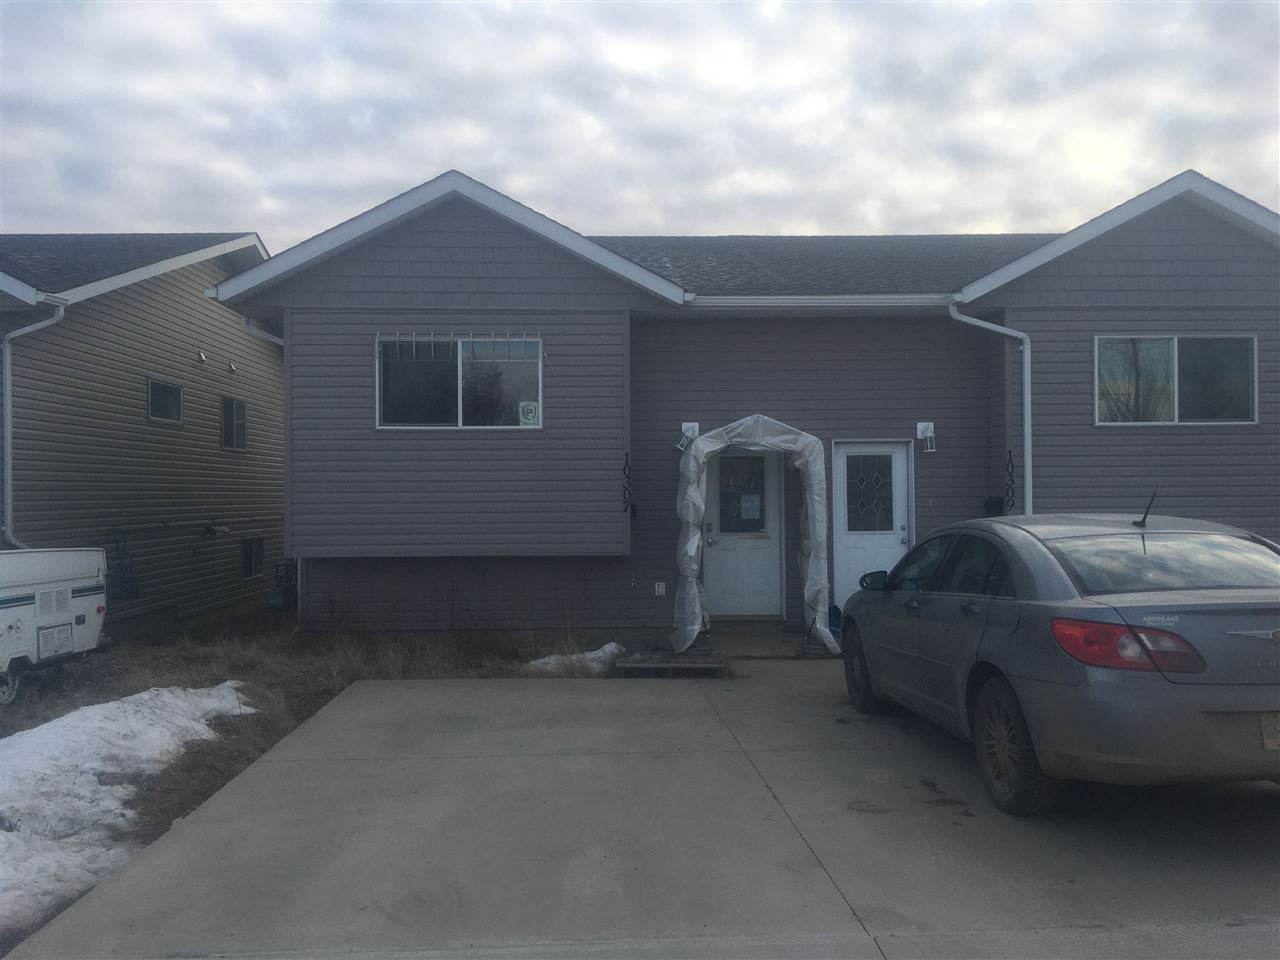 Main Photo: 10307 98 Avenue in Fort St. John: Fort St. John - City SW House 1/2 Duplex for sale (Fort St. John (Zone 60))  : MLS®# R2421767